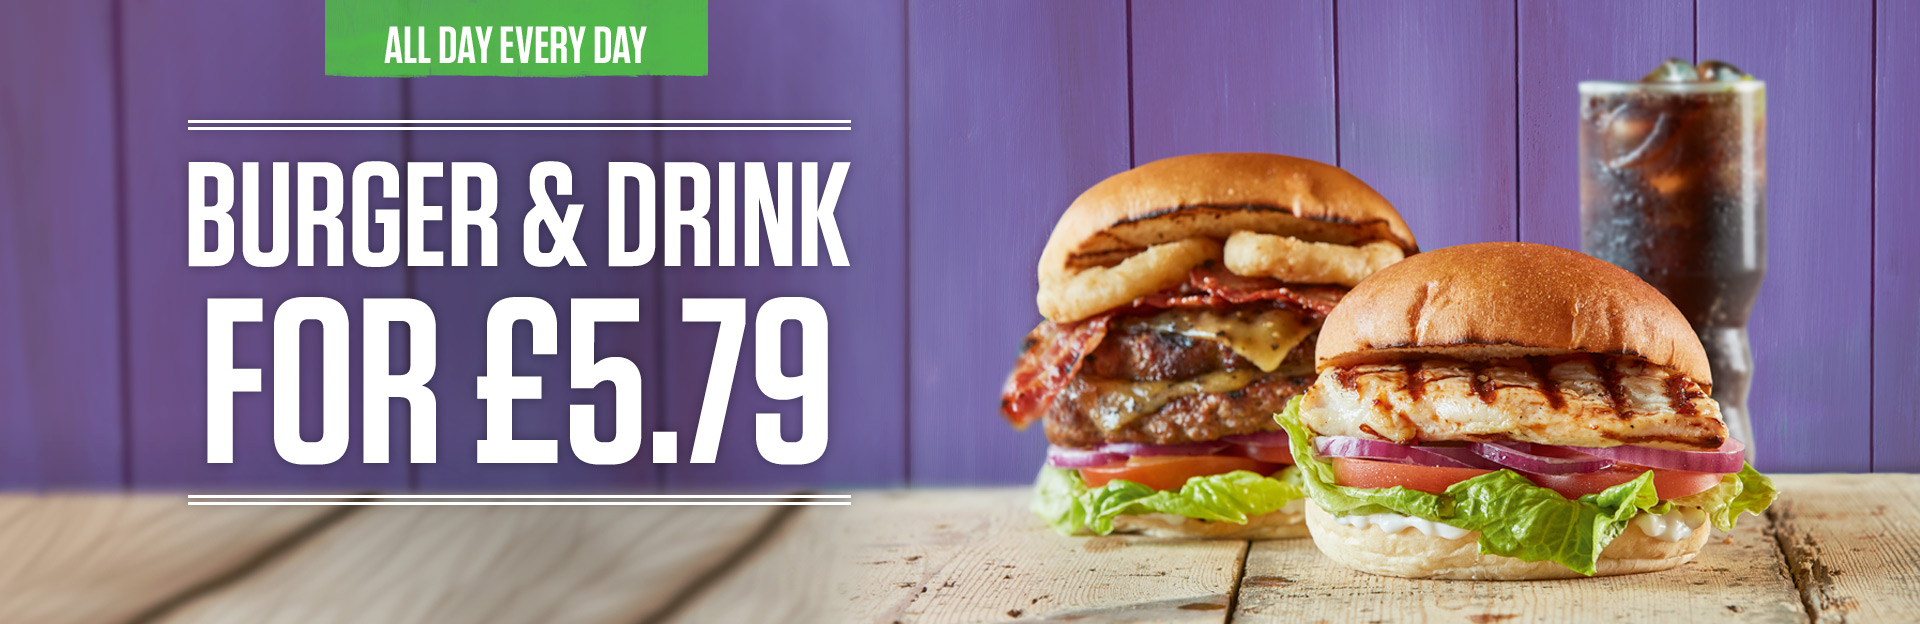 Burger and Drink Deal at Podger